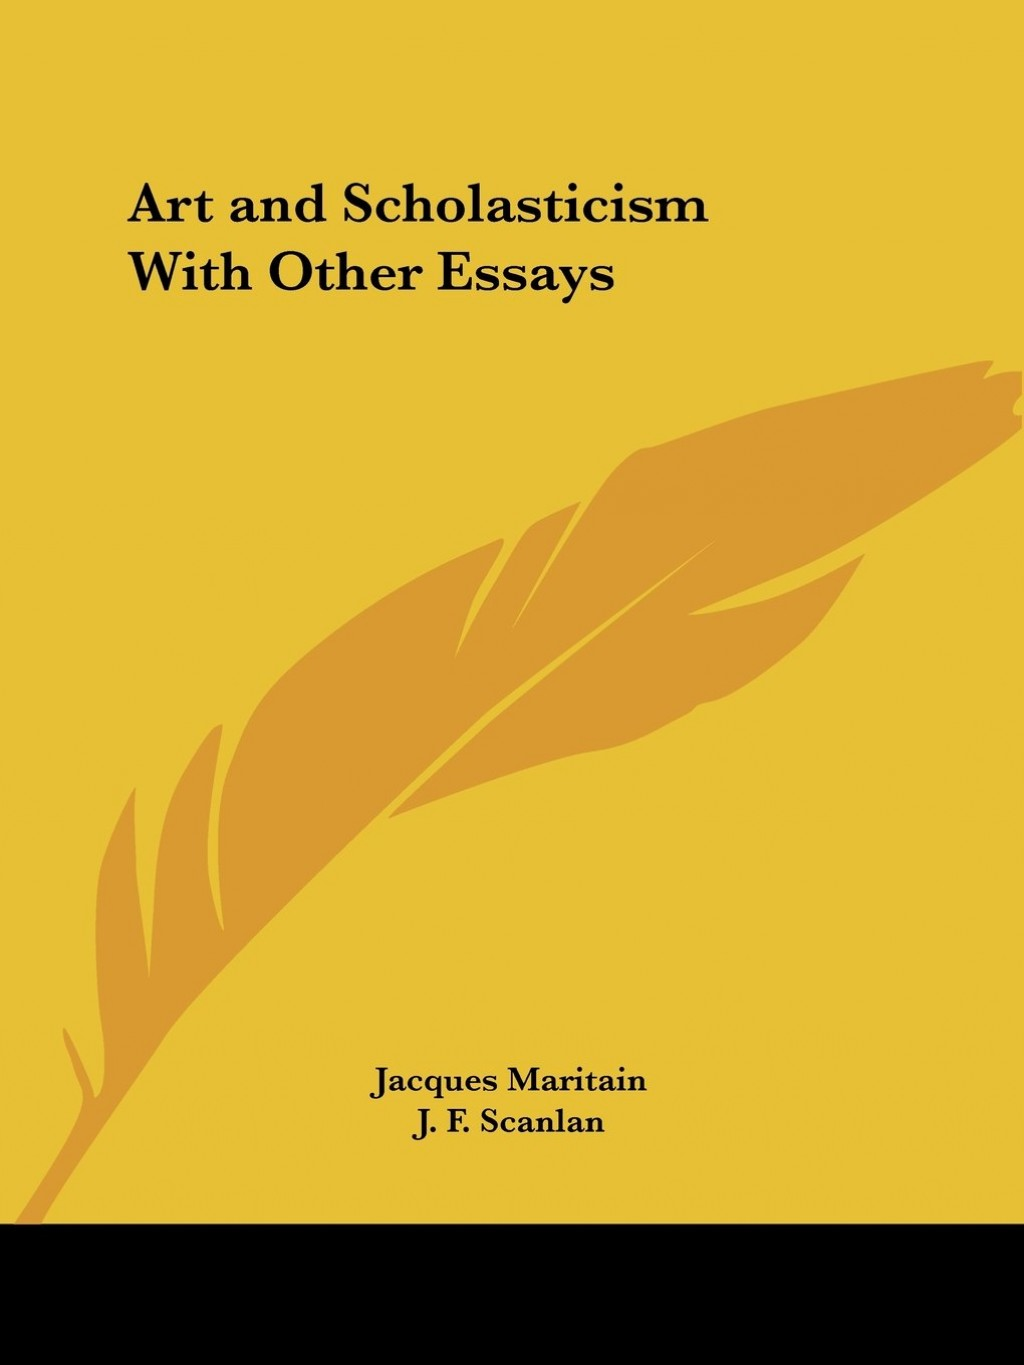 003 Art And Scholasticism With Other Essays 512bs37e1sml Essay Impressive Large